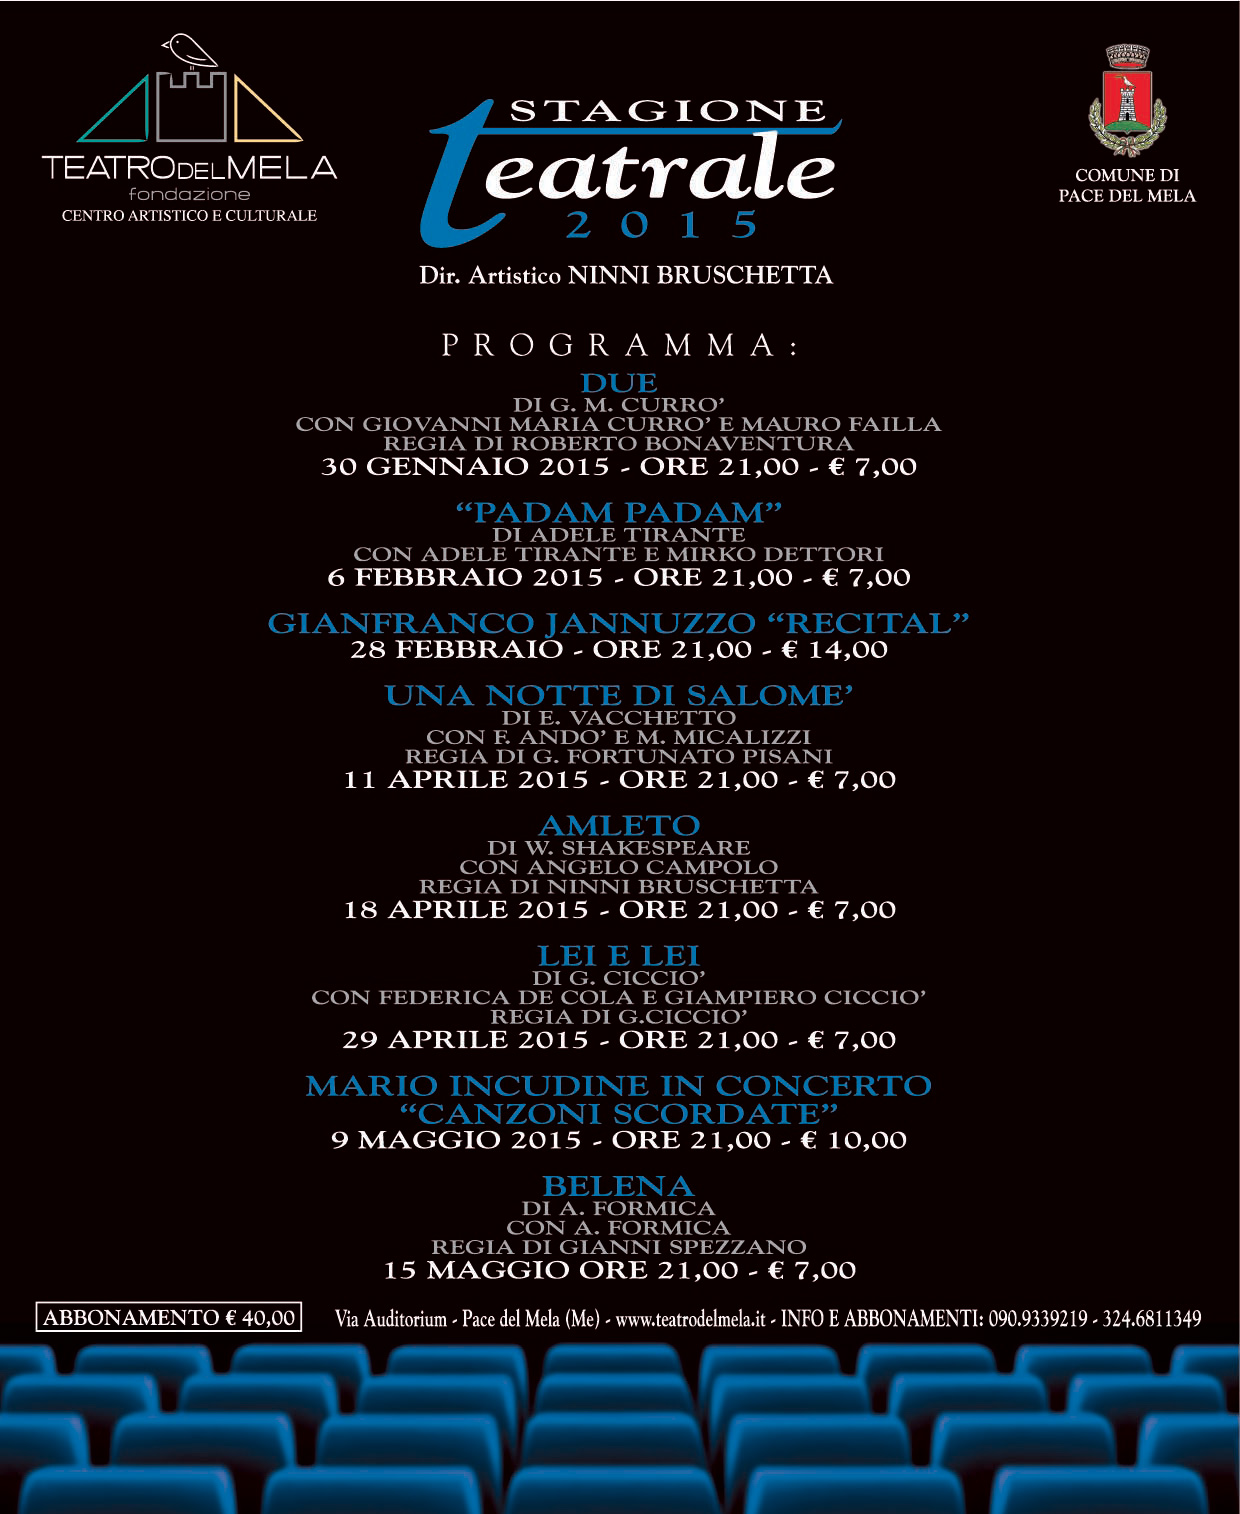 Stagione Teatrale 2015